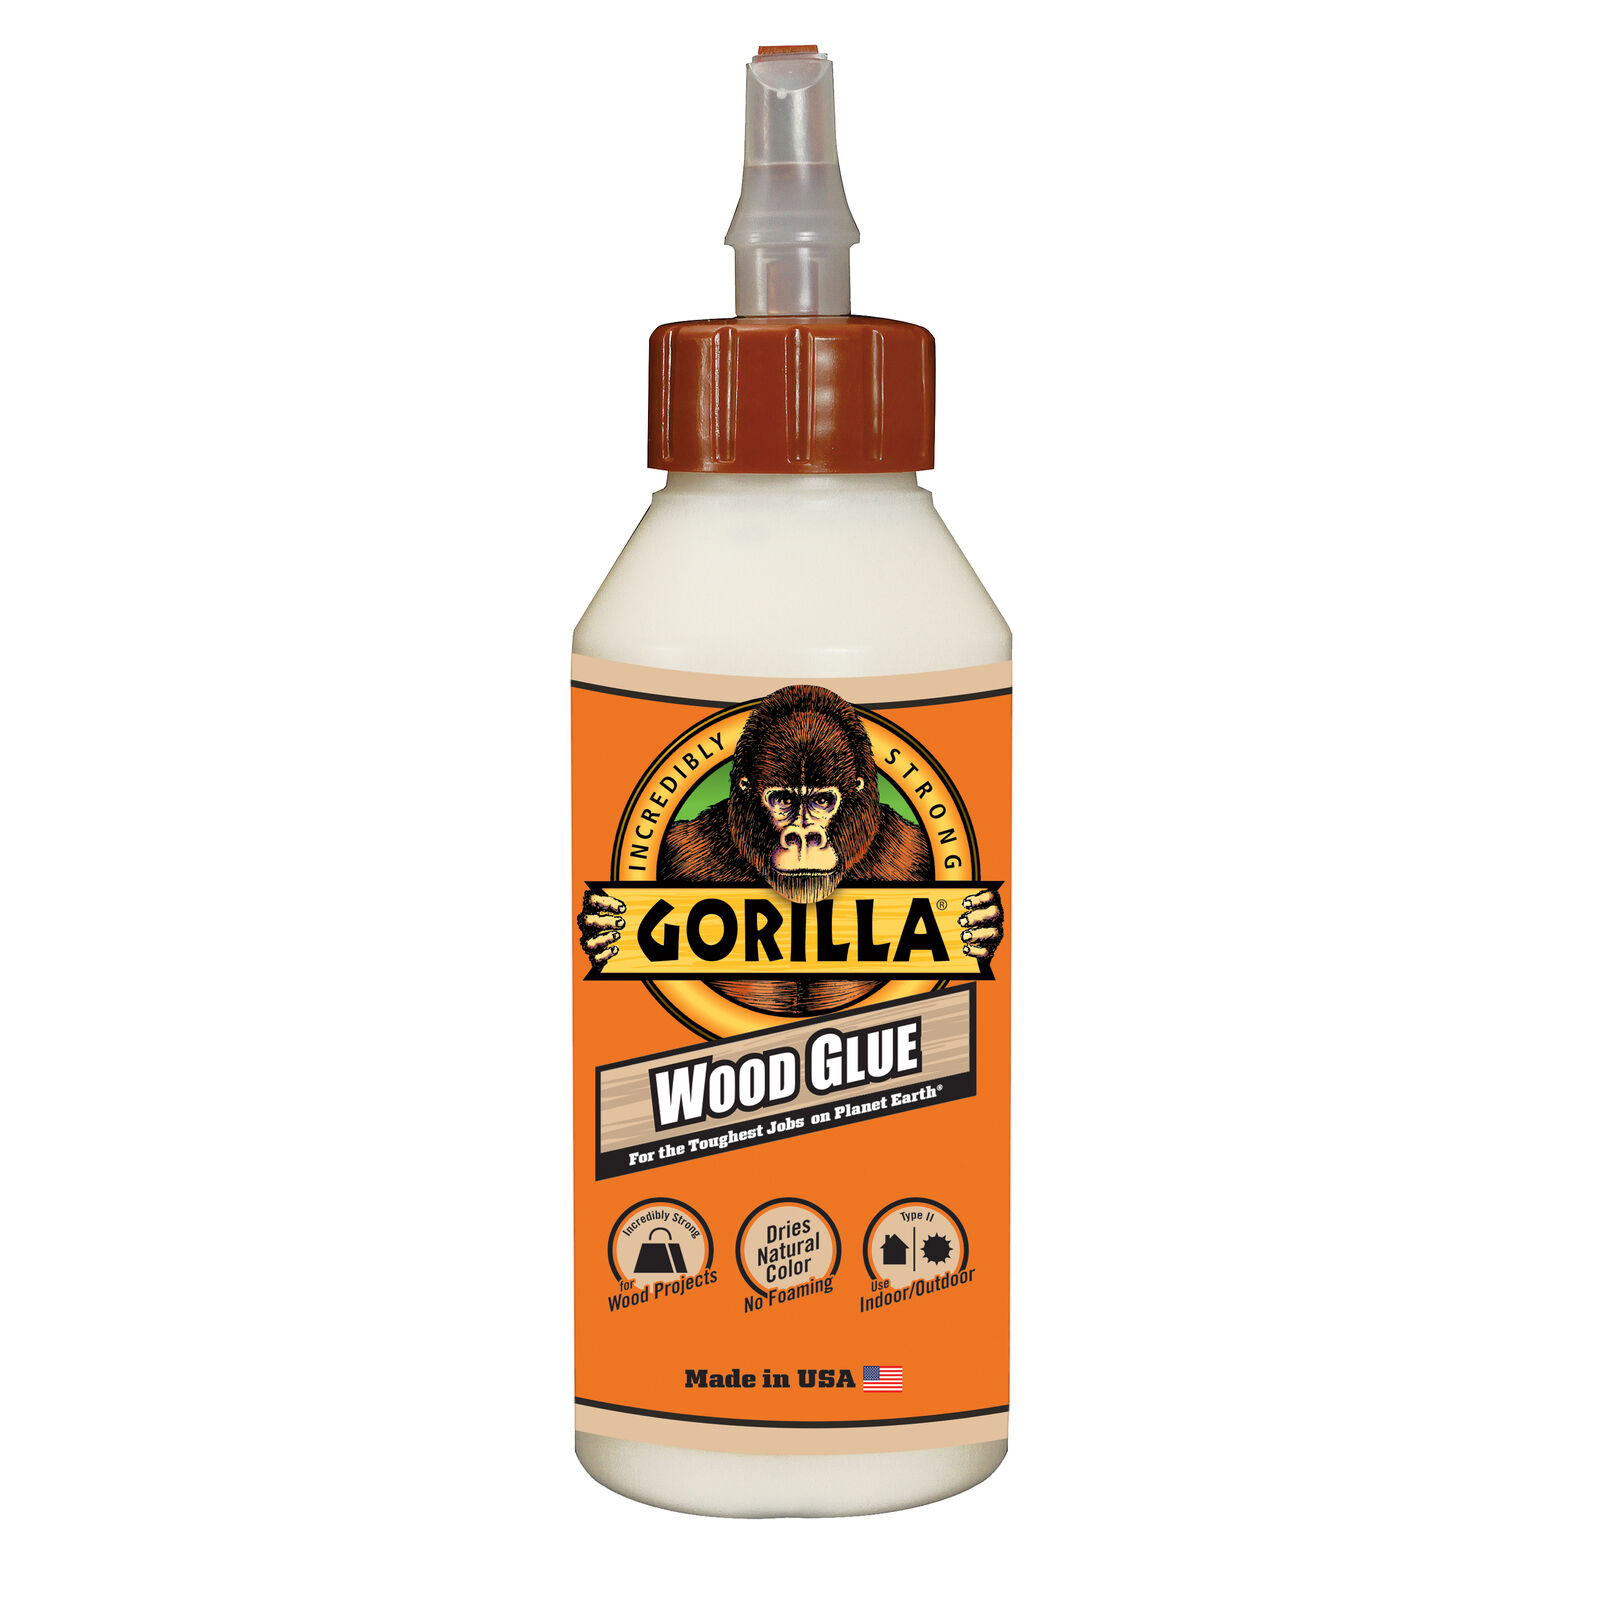 Gorilla Glue Wood Glue Original Liquid 8 Oz 6200001 hardwoods, softwoods